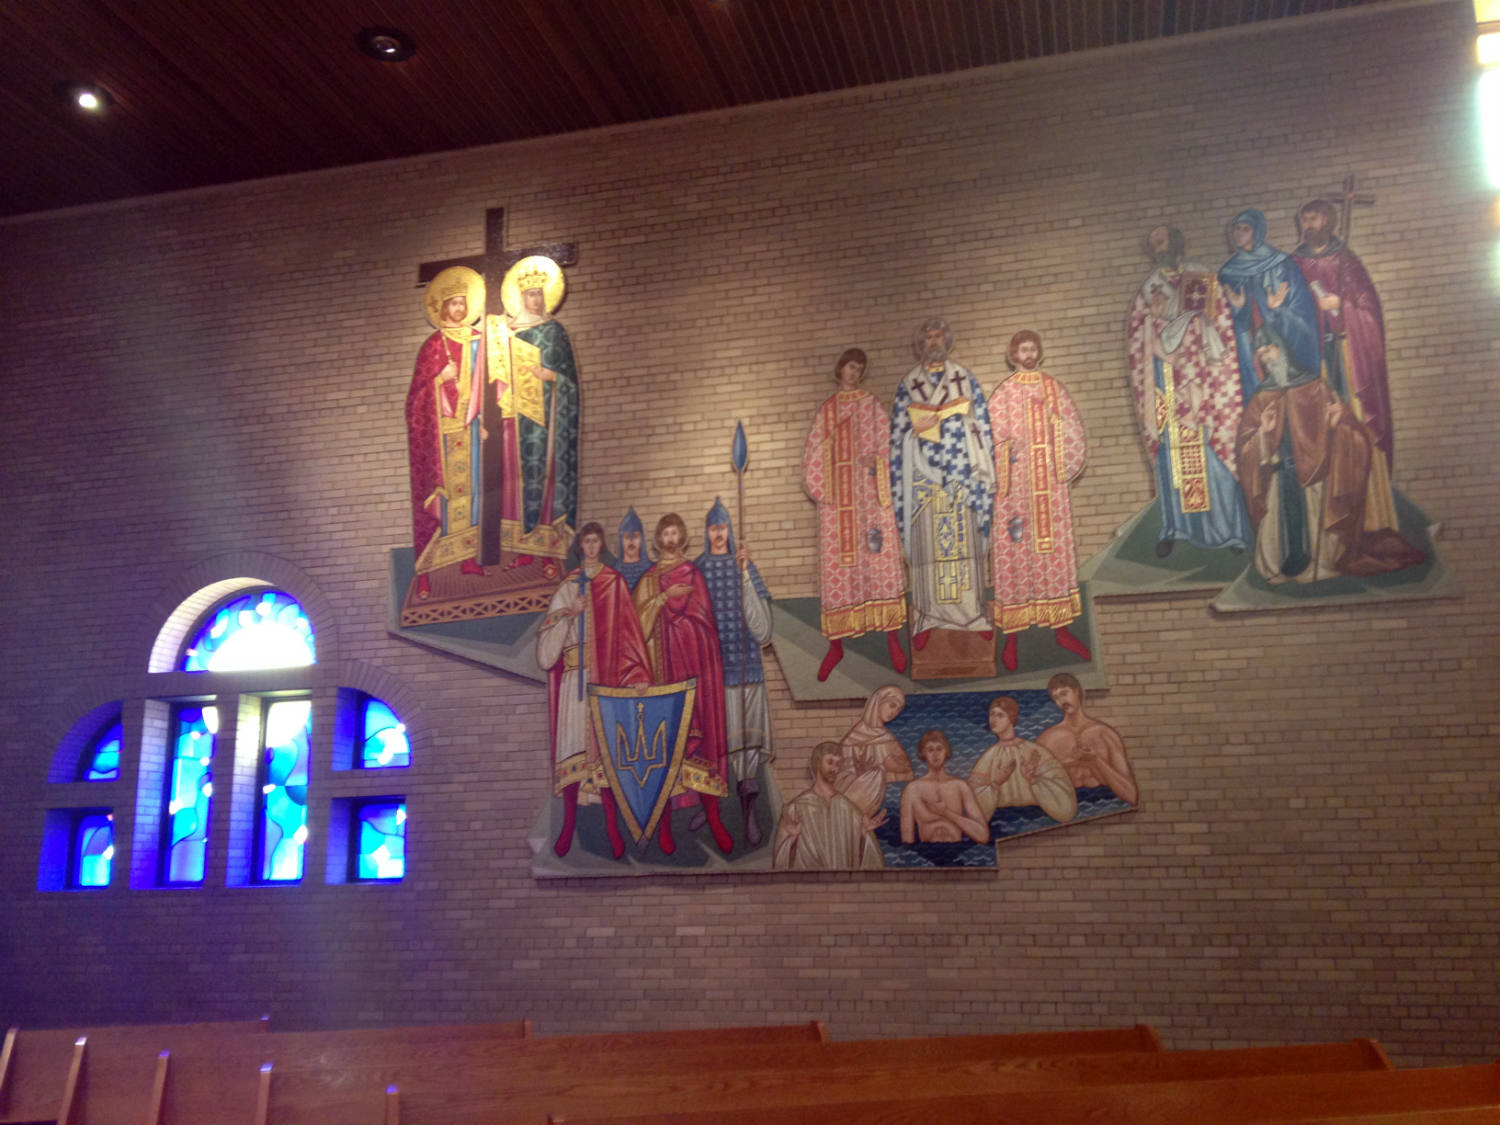 Tiled Artwork in St. Josaphat's Church in Rochester